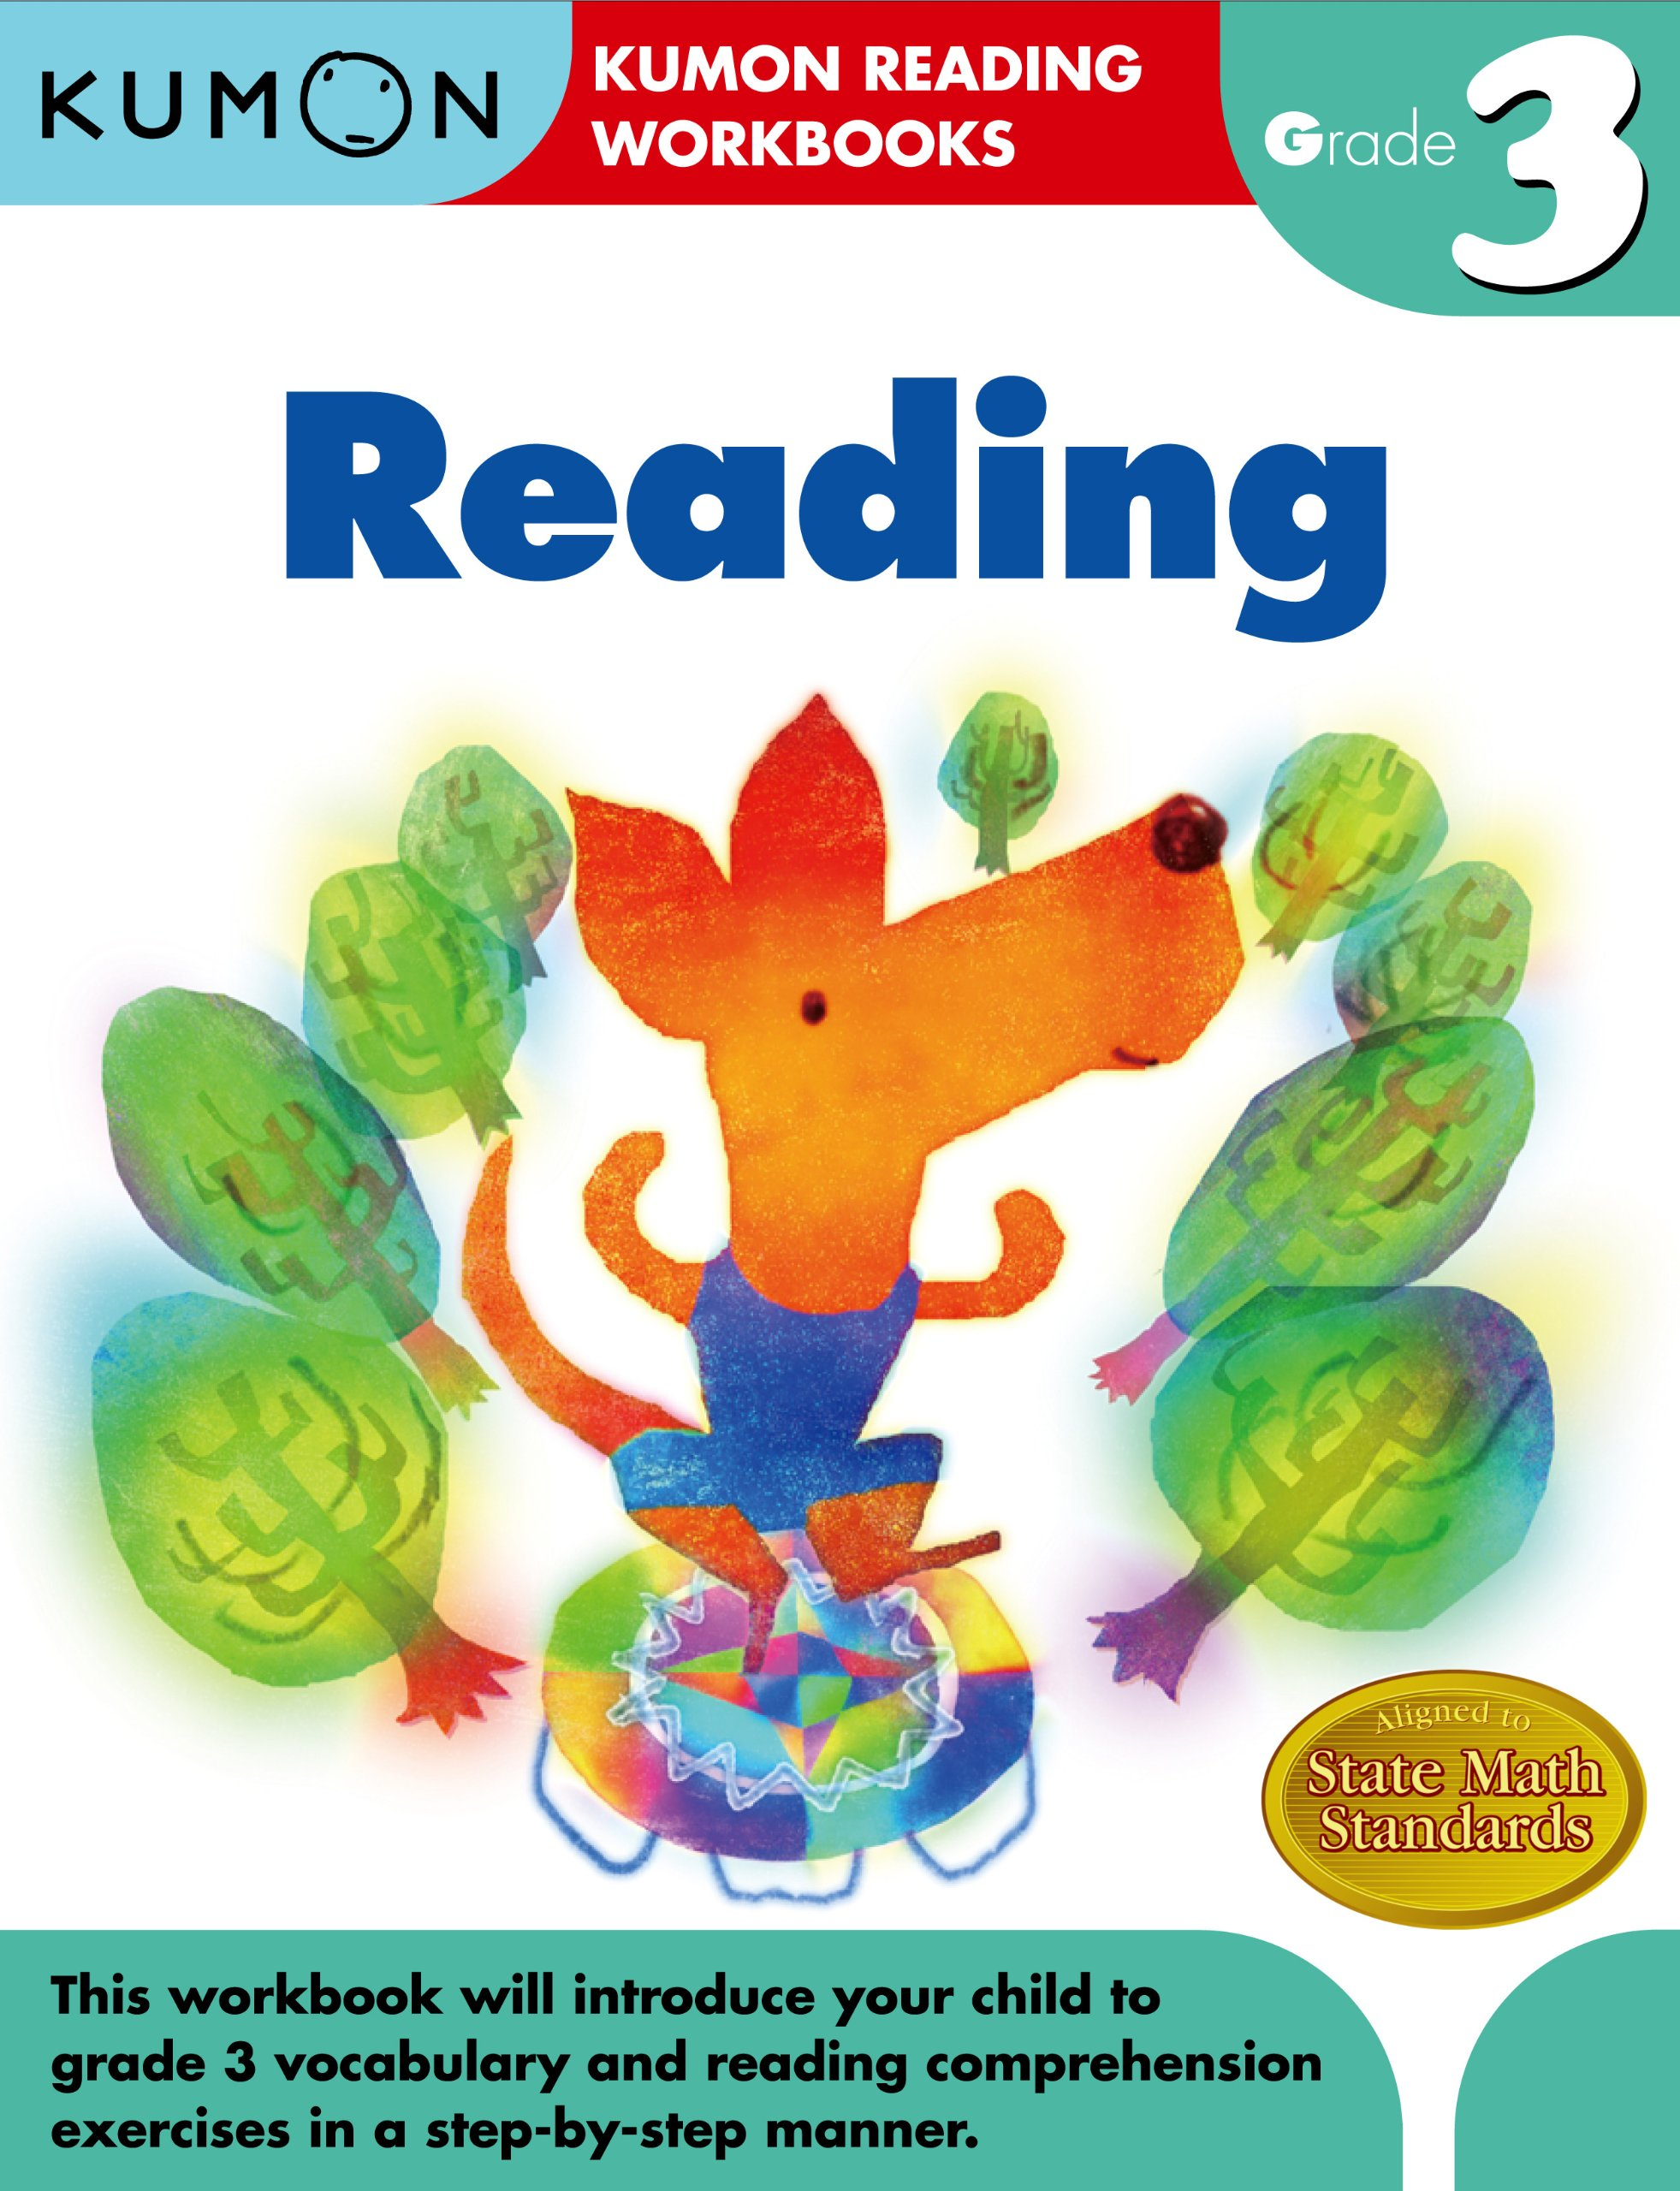 Printables Kumon Reading Worksheets amazon com grade 3 reading kumon workbooks 9781934968772 publishing books